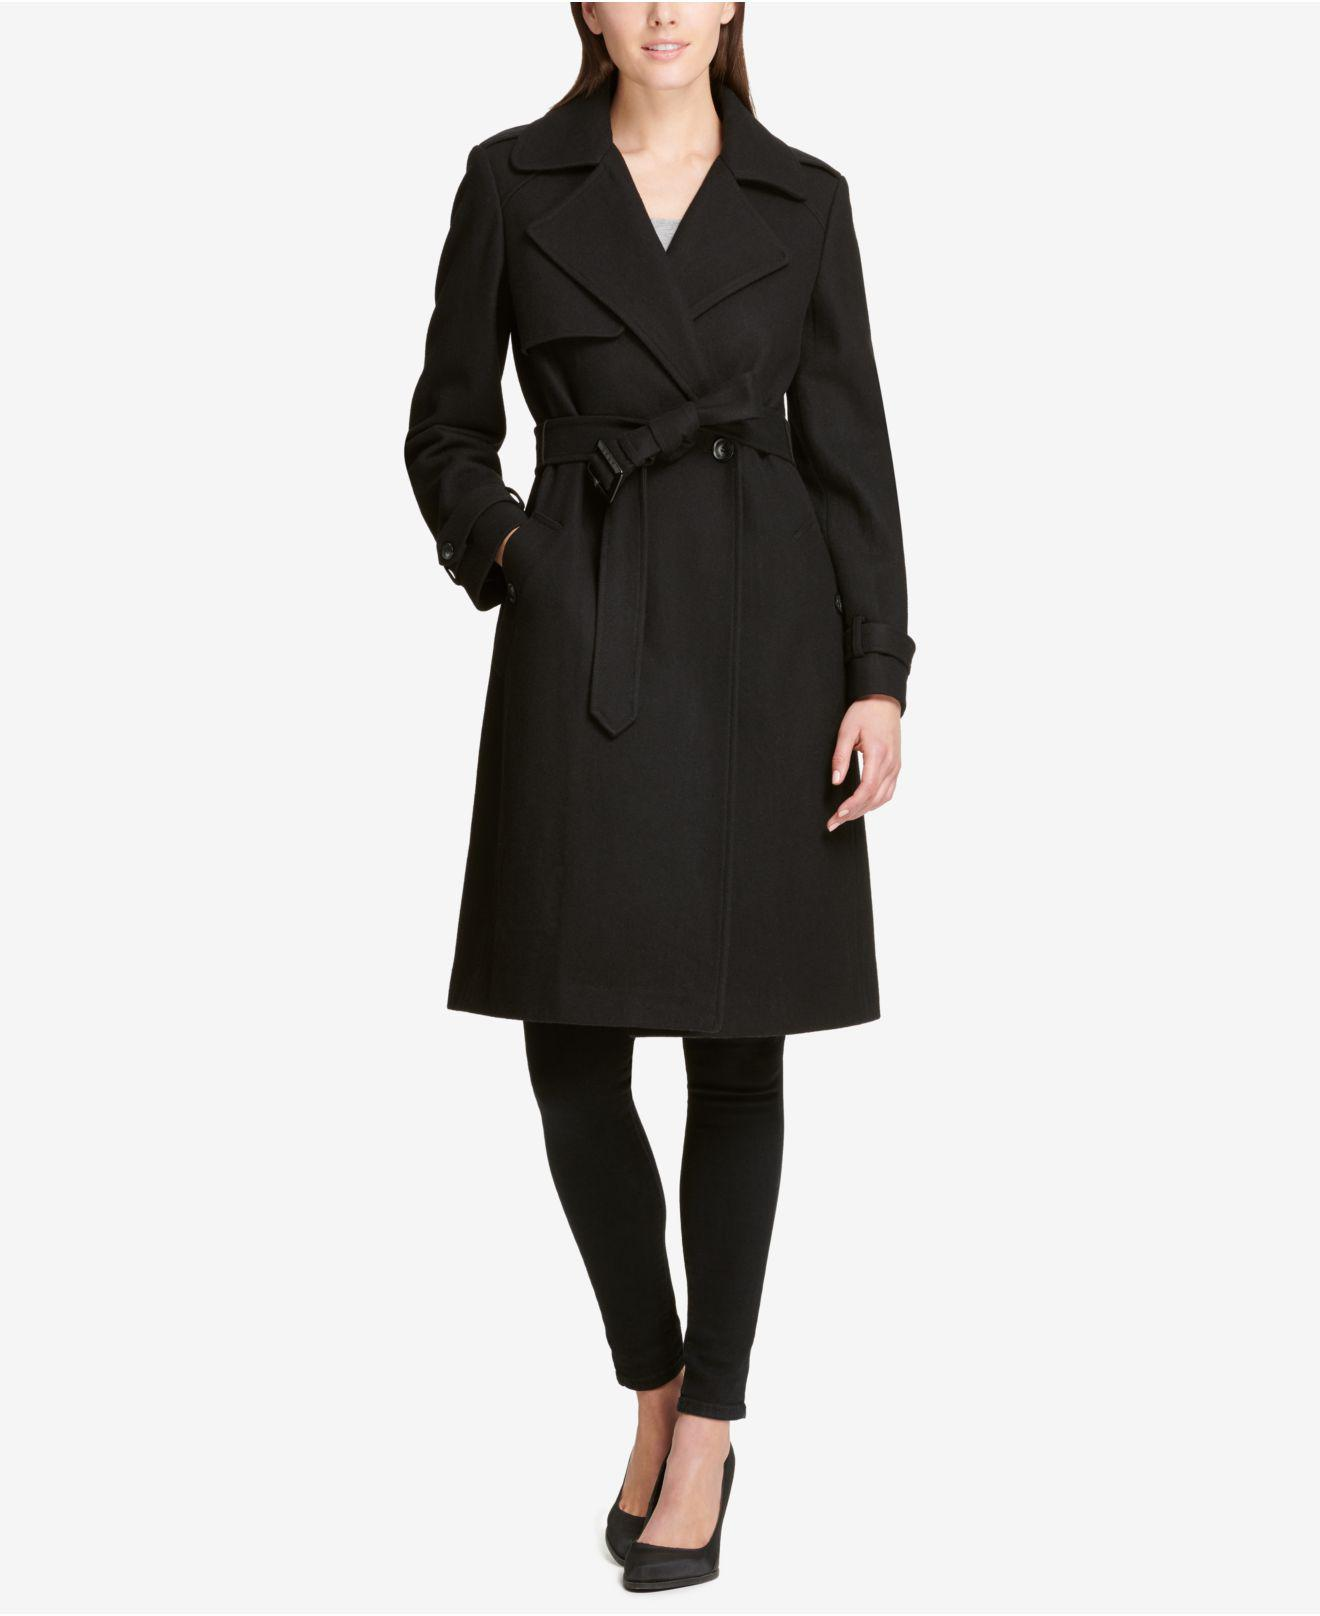 c8090fe9766 DKNY. Women s Black Belted Double-breasted Trench Coat ...